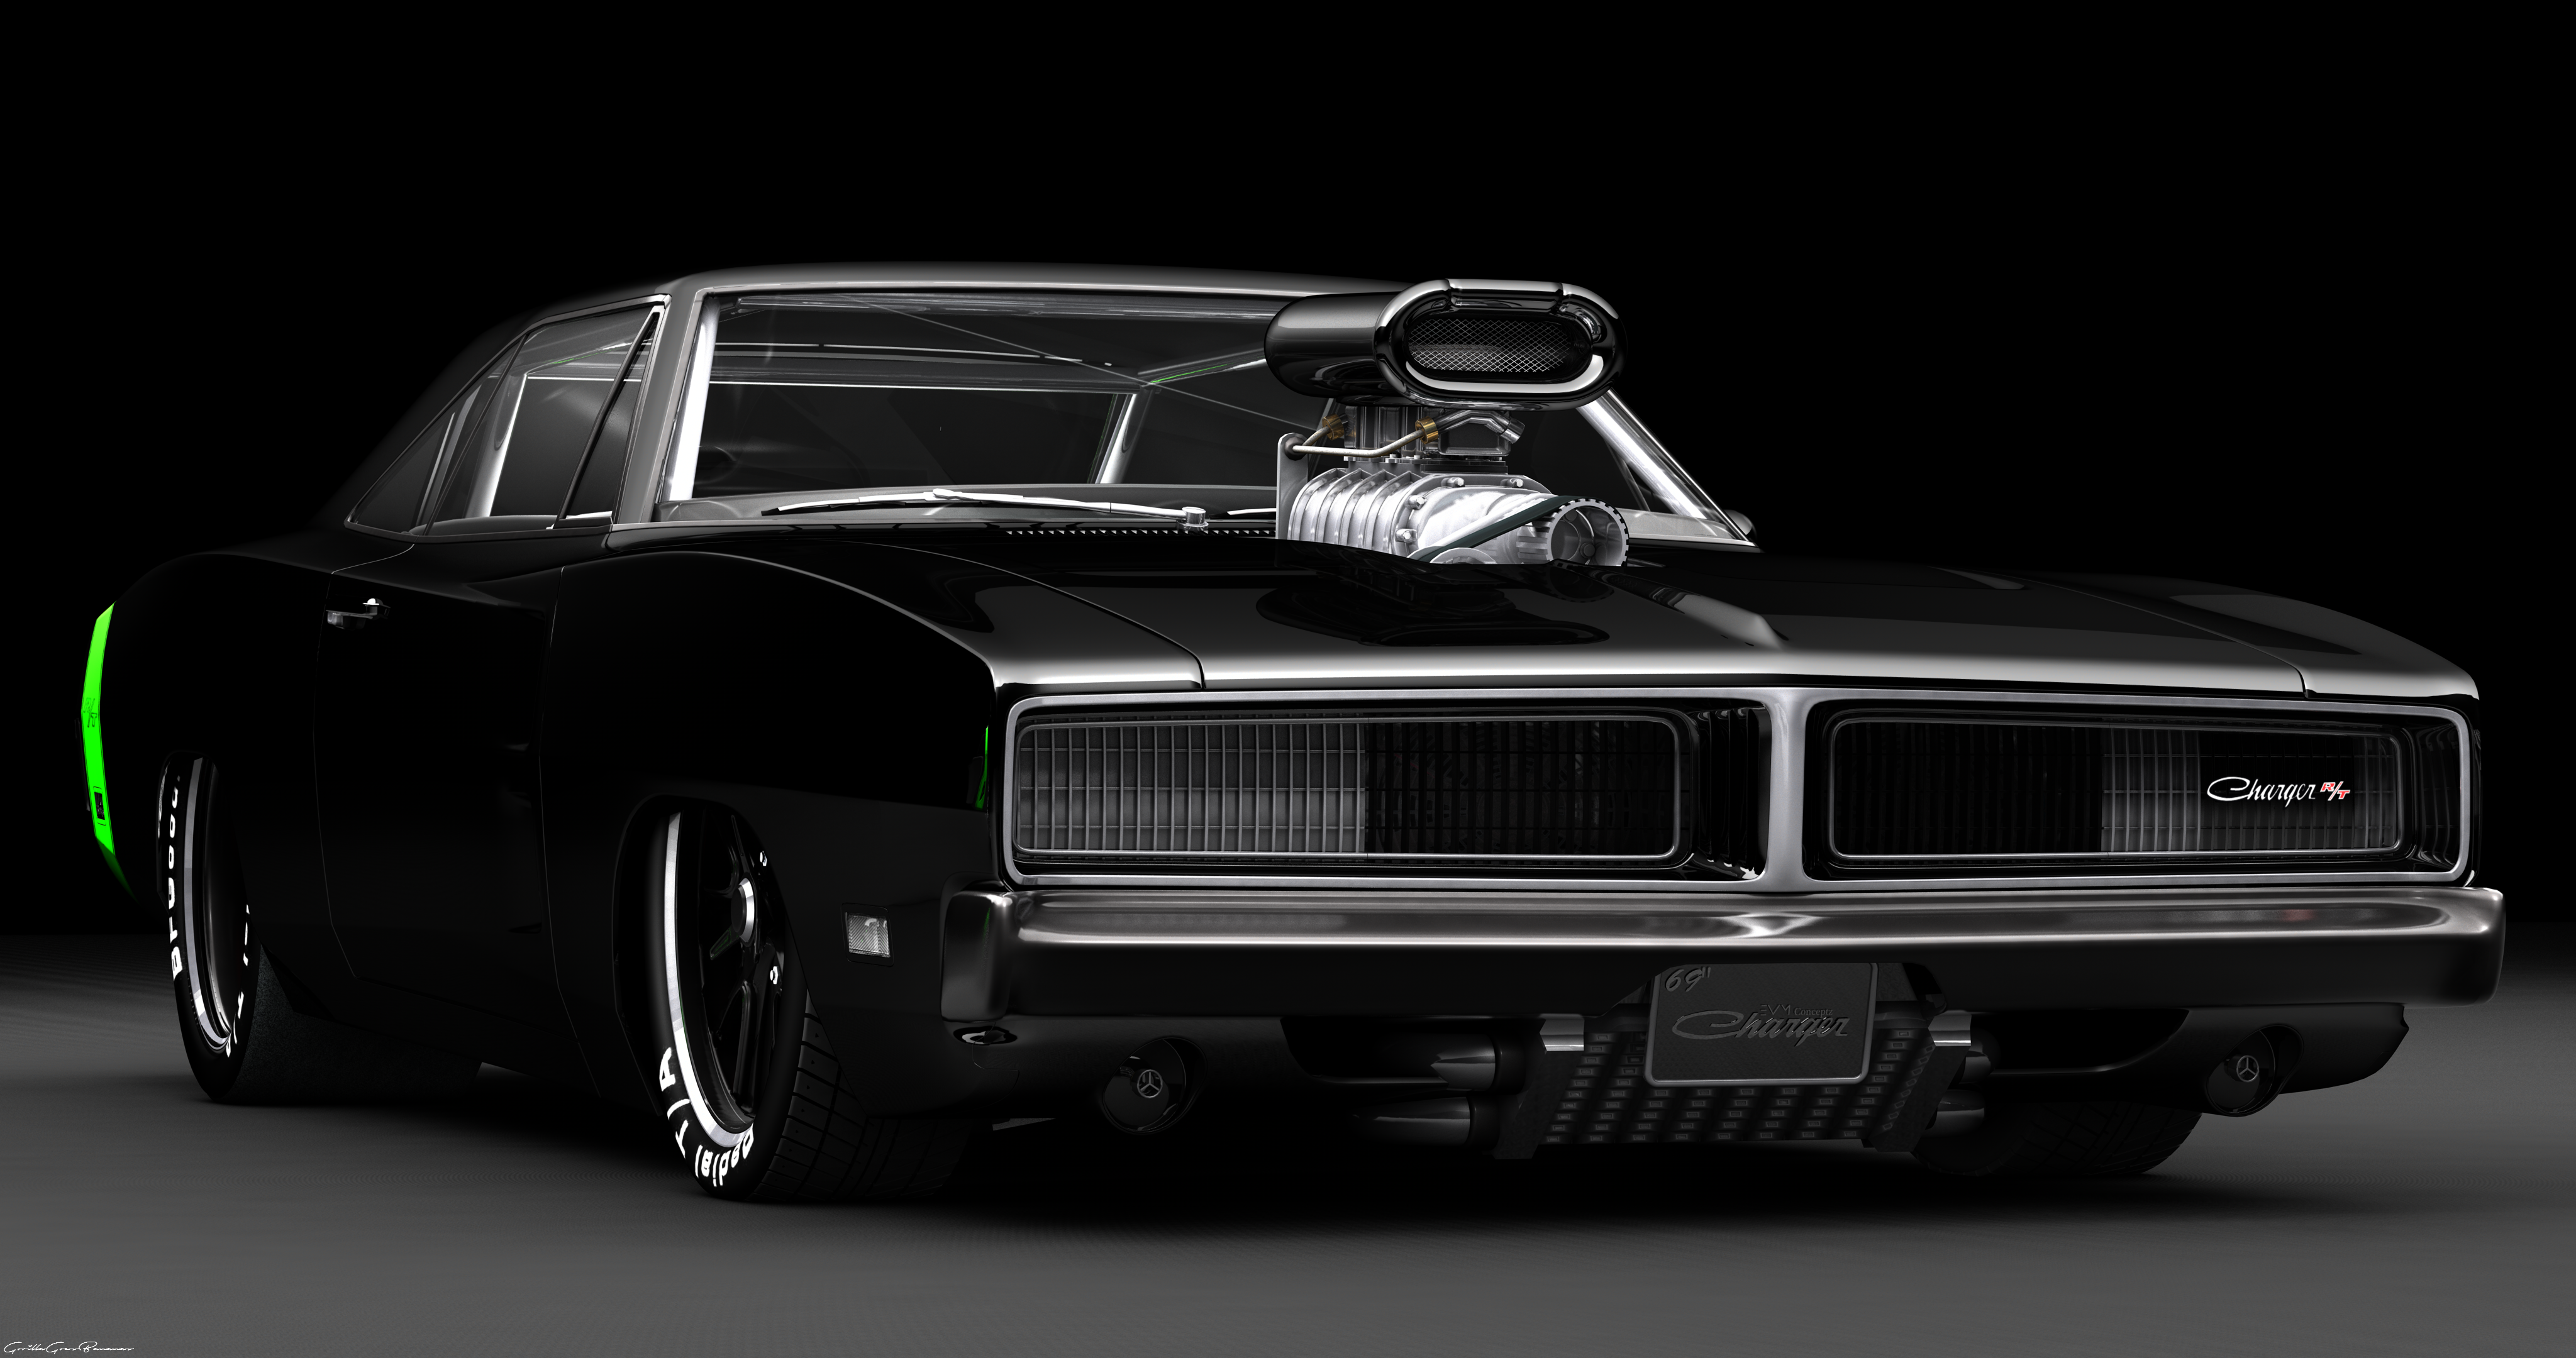 1969 dodge charger rt pro stock drag car by transc3dent on deviantart. Black Bedroom Furniture Sets. Home Design Ideas